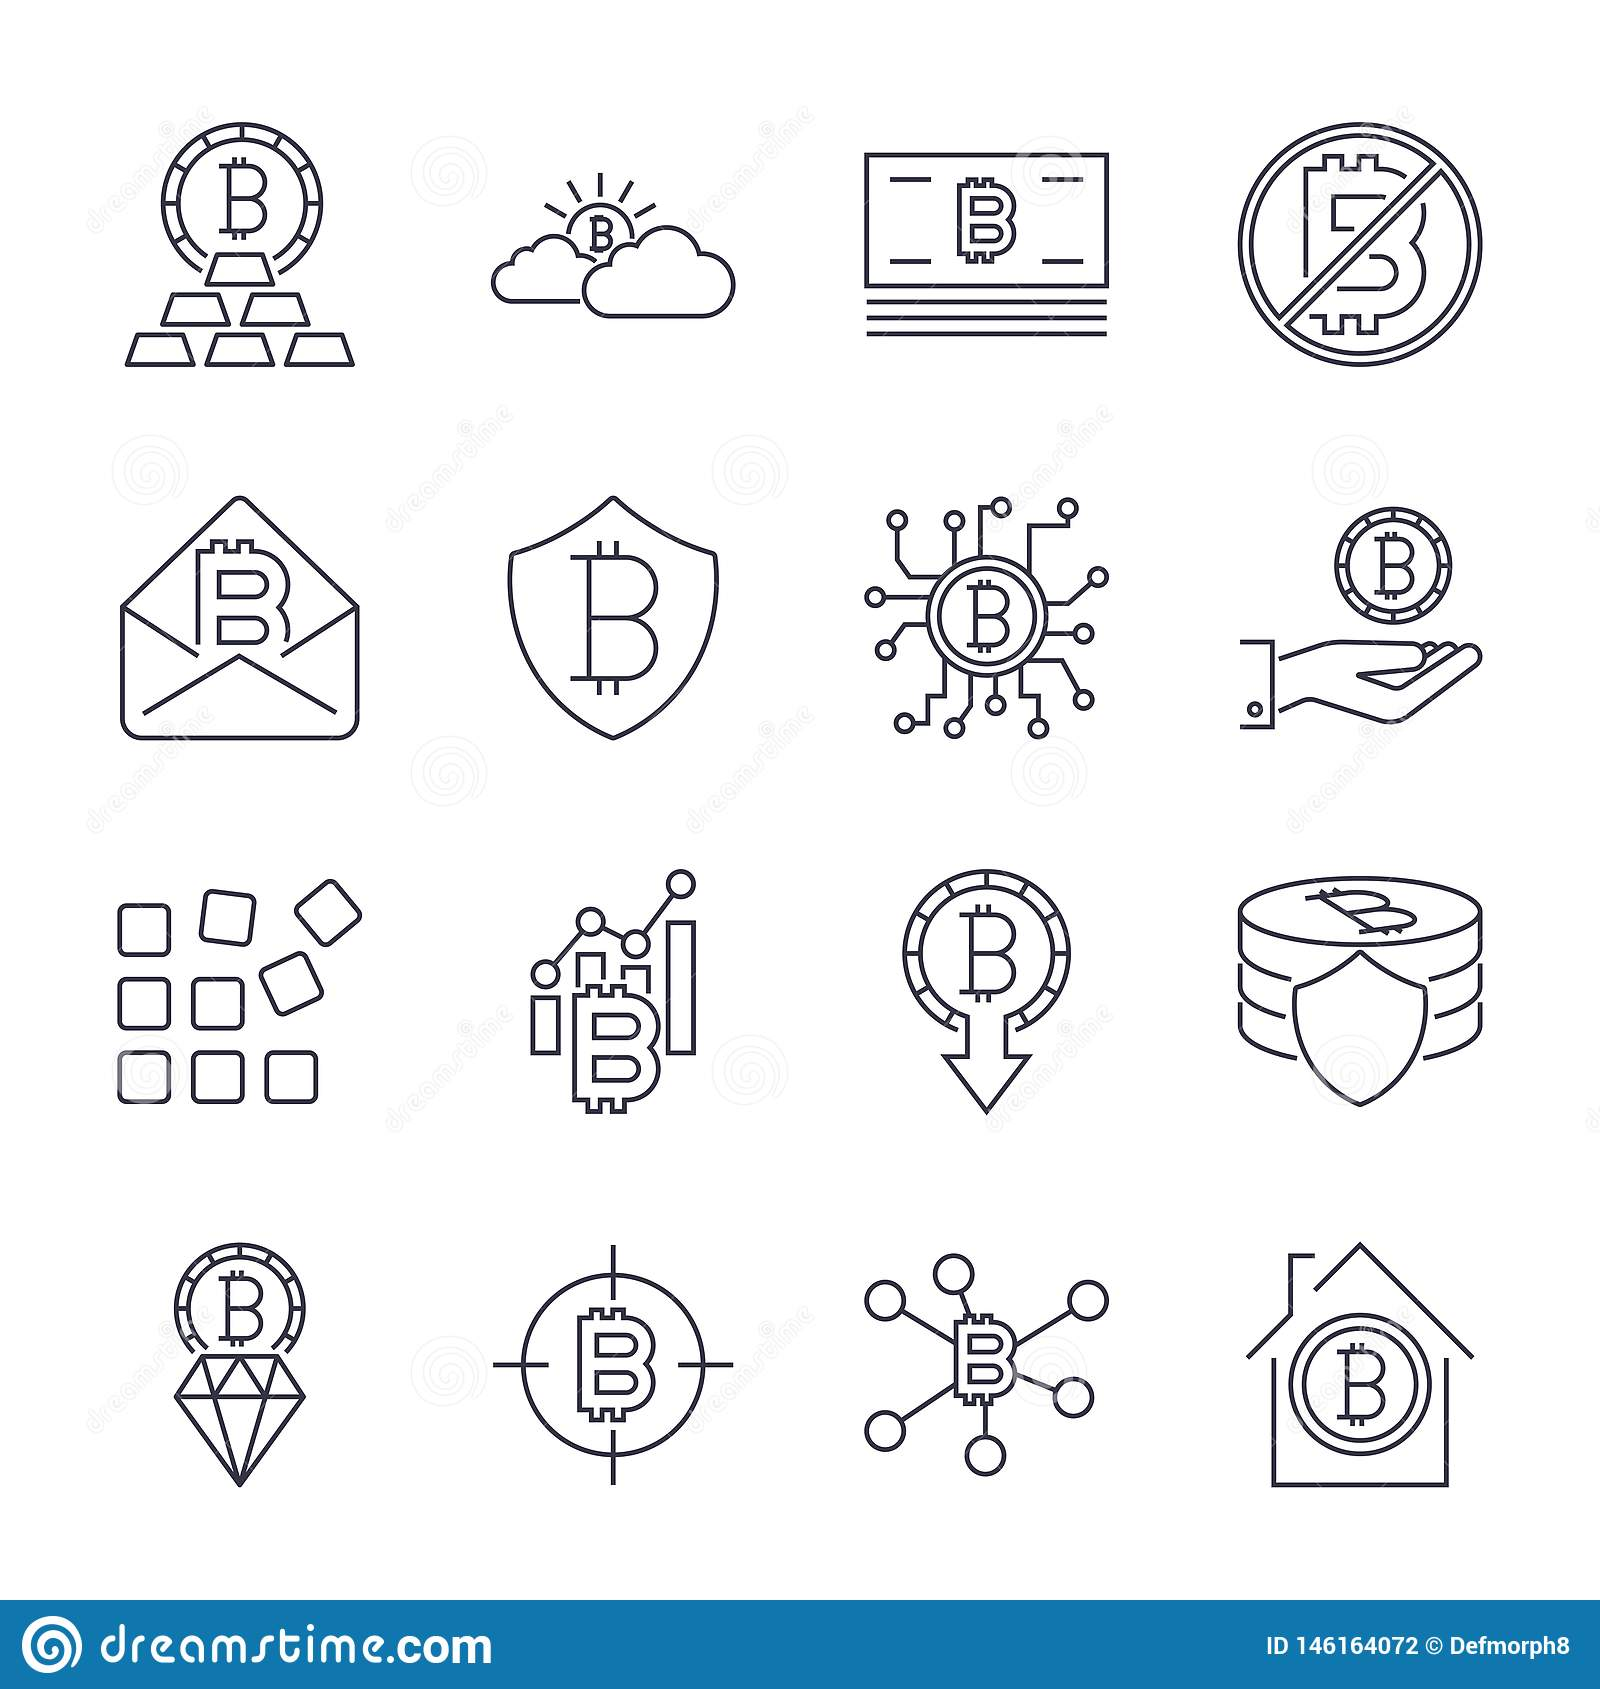 Bitcoin different icons set for internet money crypto currency symbol and coin image for using in web, apps, programs